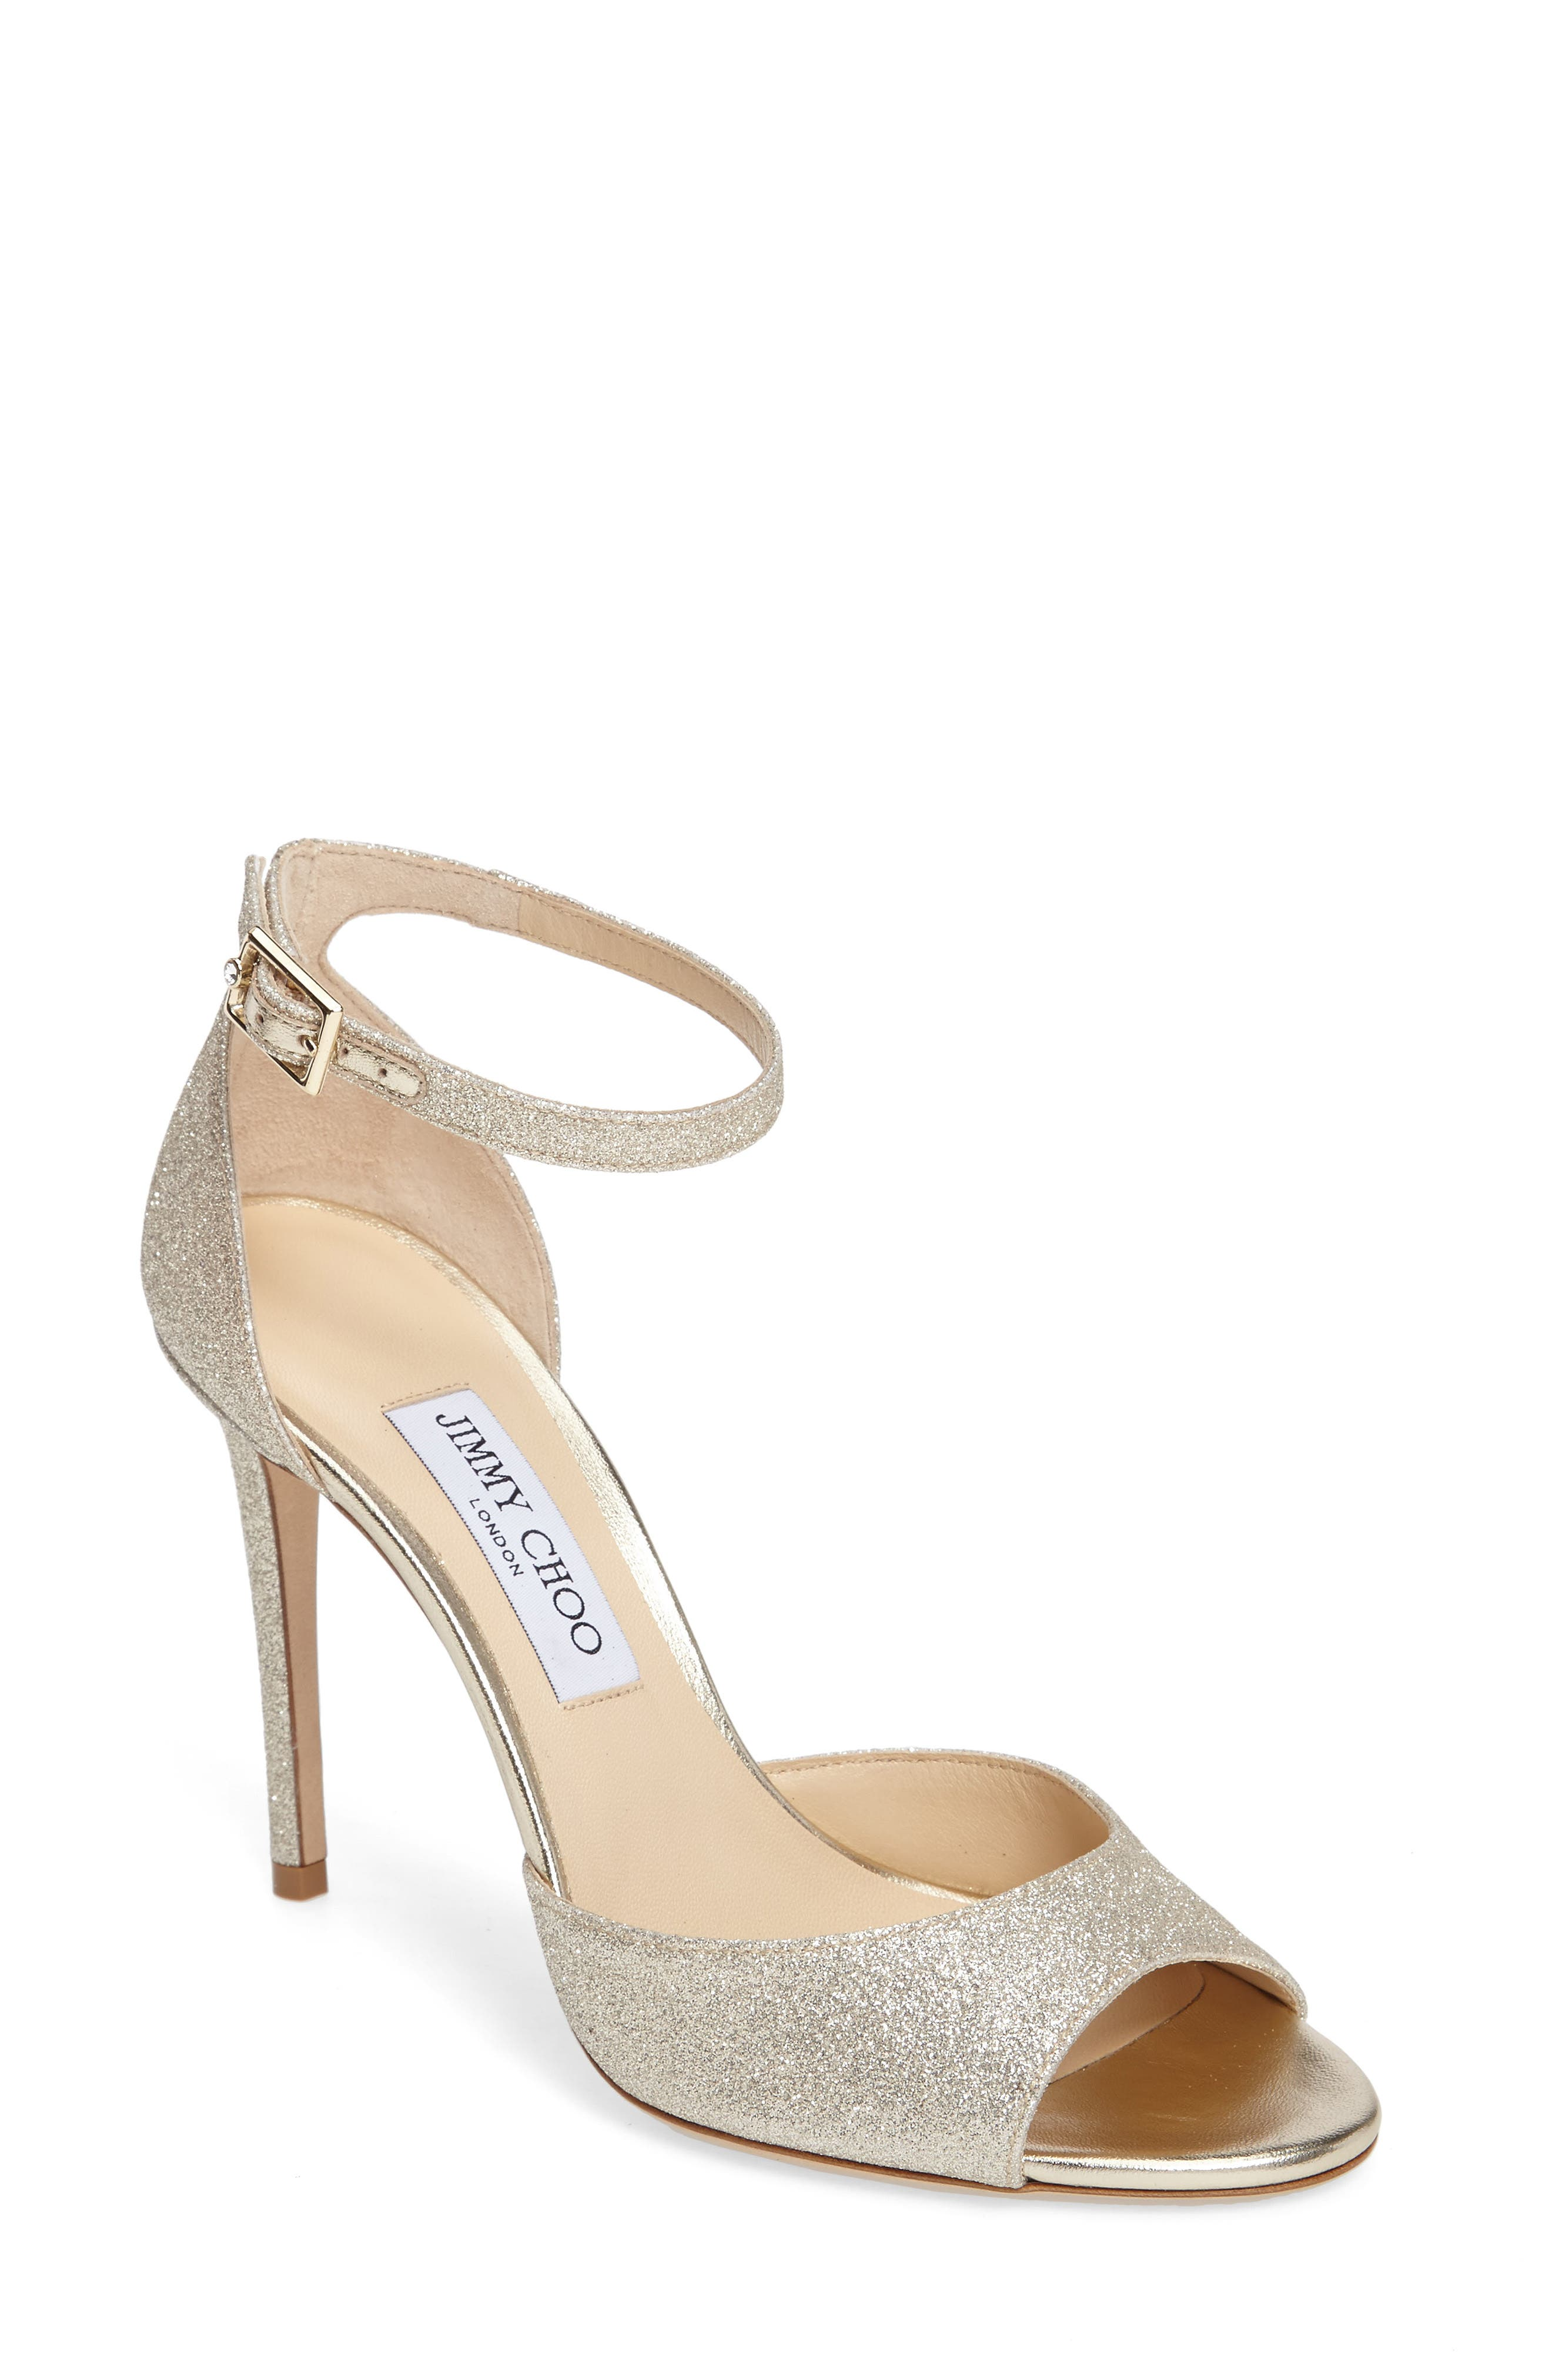 Annie Ankle Strap Sandal,                         Main,                         color, PLATINUM